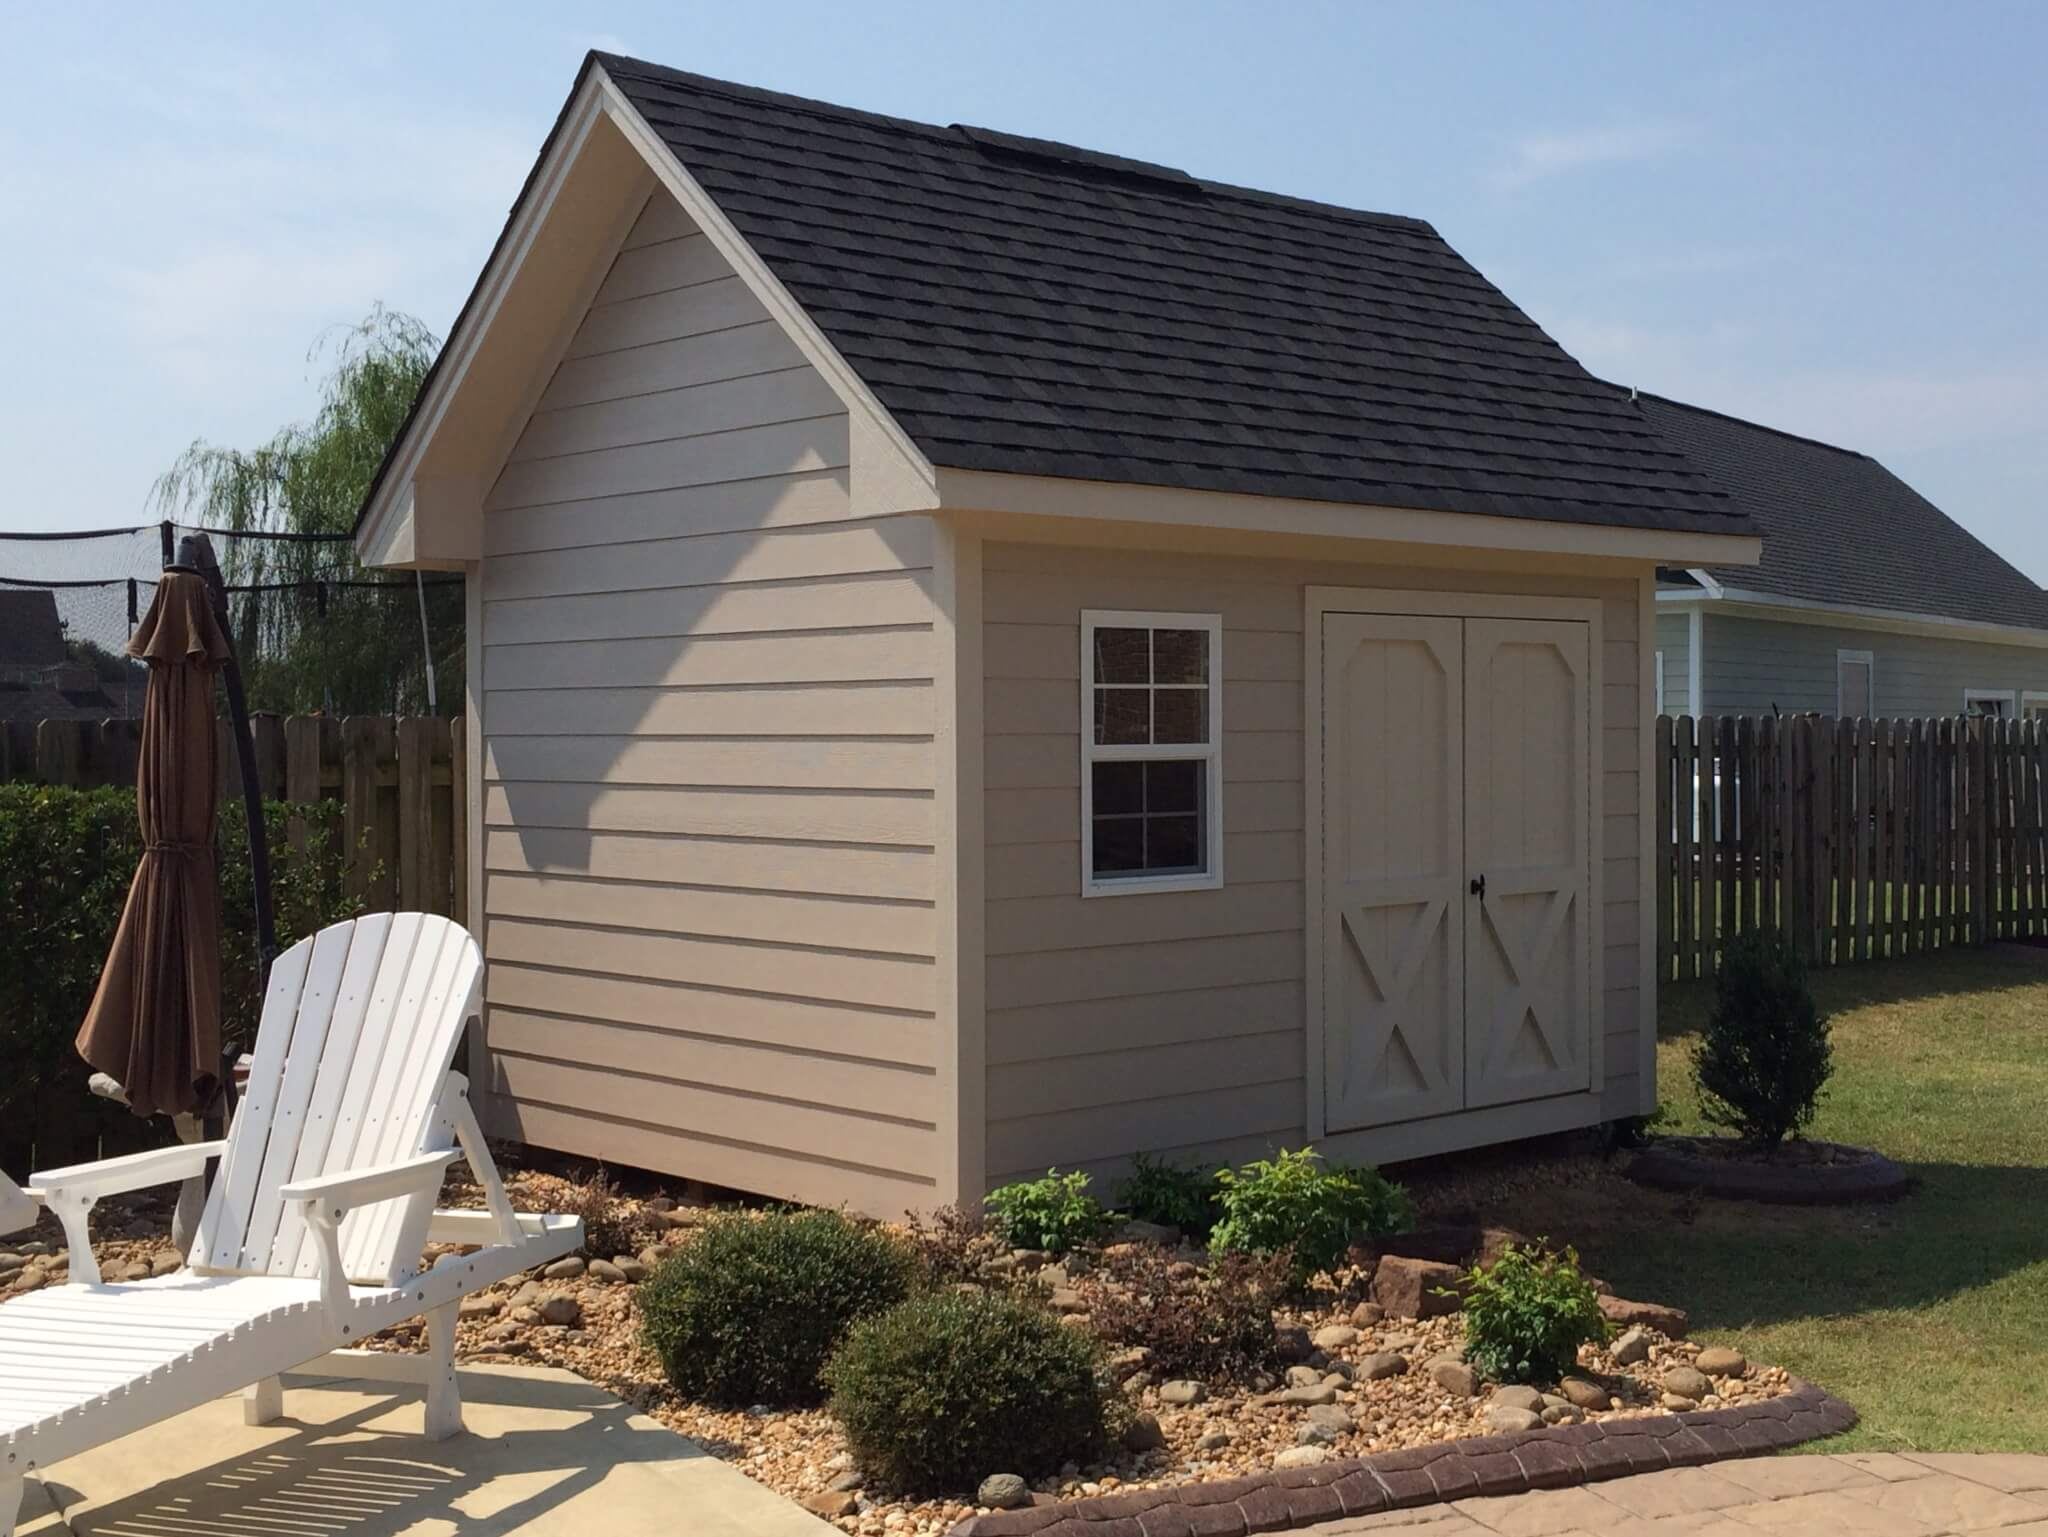 heritage modular the storage sheds custom prefab buildings raleigh woodtex